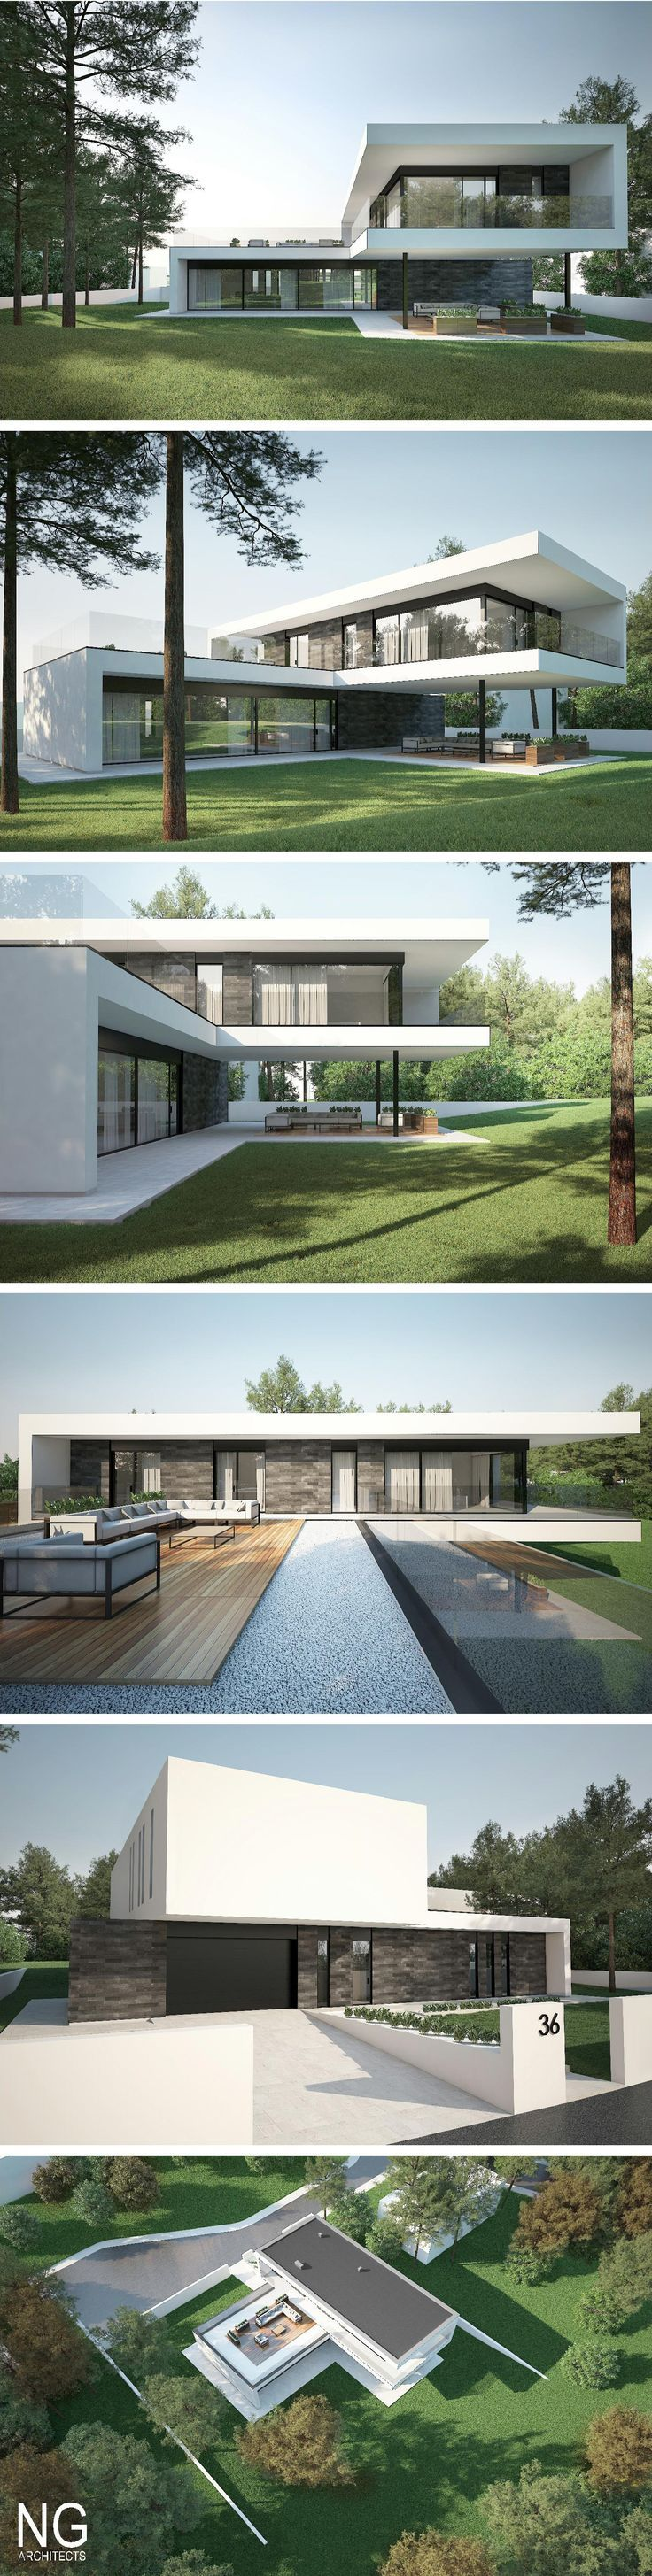 Ideas about modern houses on pinterest modern architecture modern - Nice Modern House In Kaunas By Ng Architects Www Ngarchitects Lt